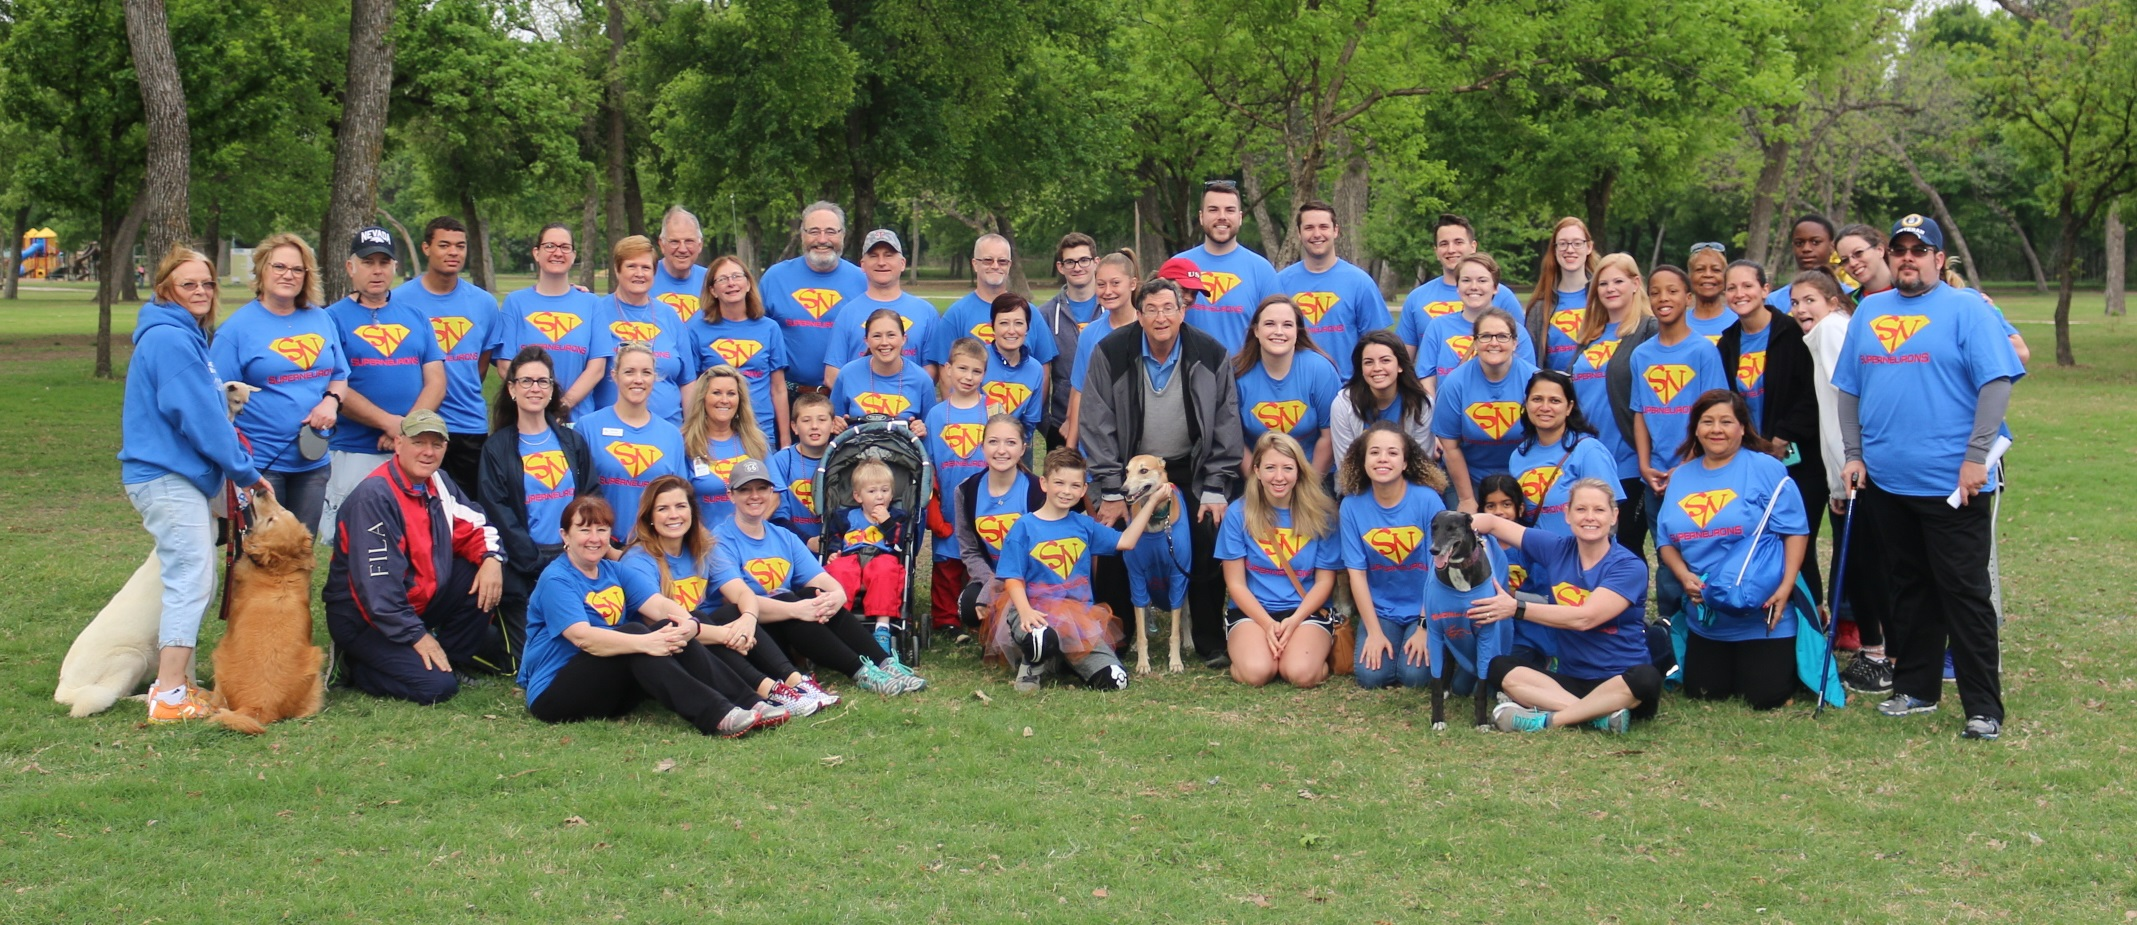 kane Hall Barry Neurology at the 2017 Ft Worth MS Walk